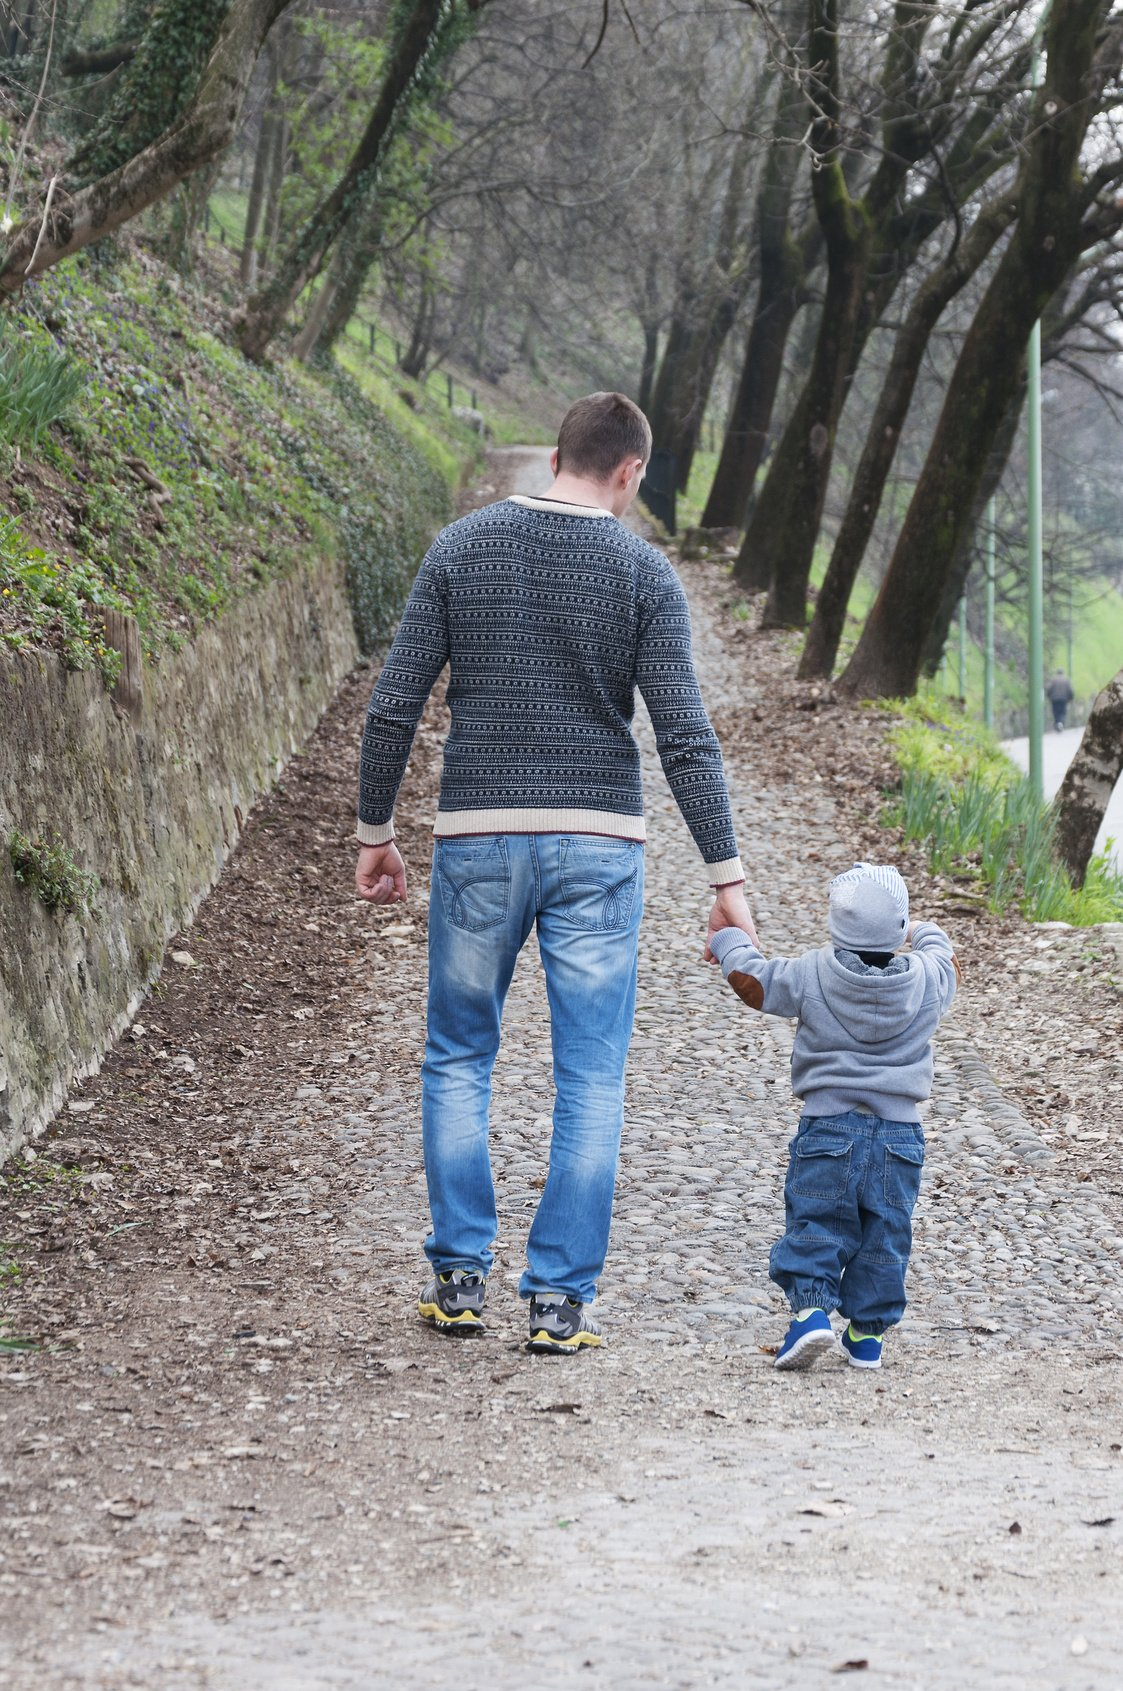 Happiness Man and son walking